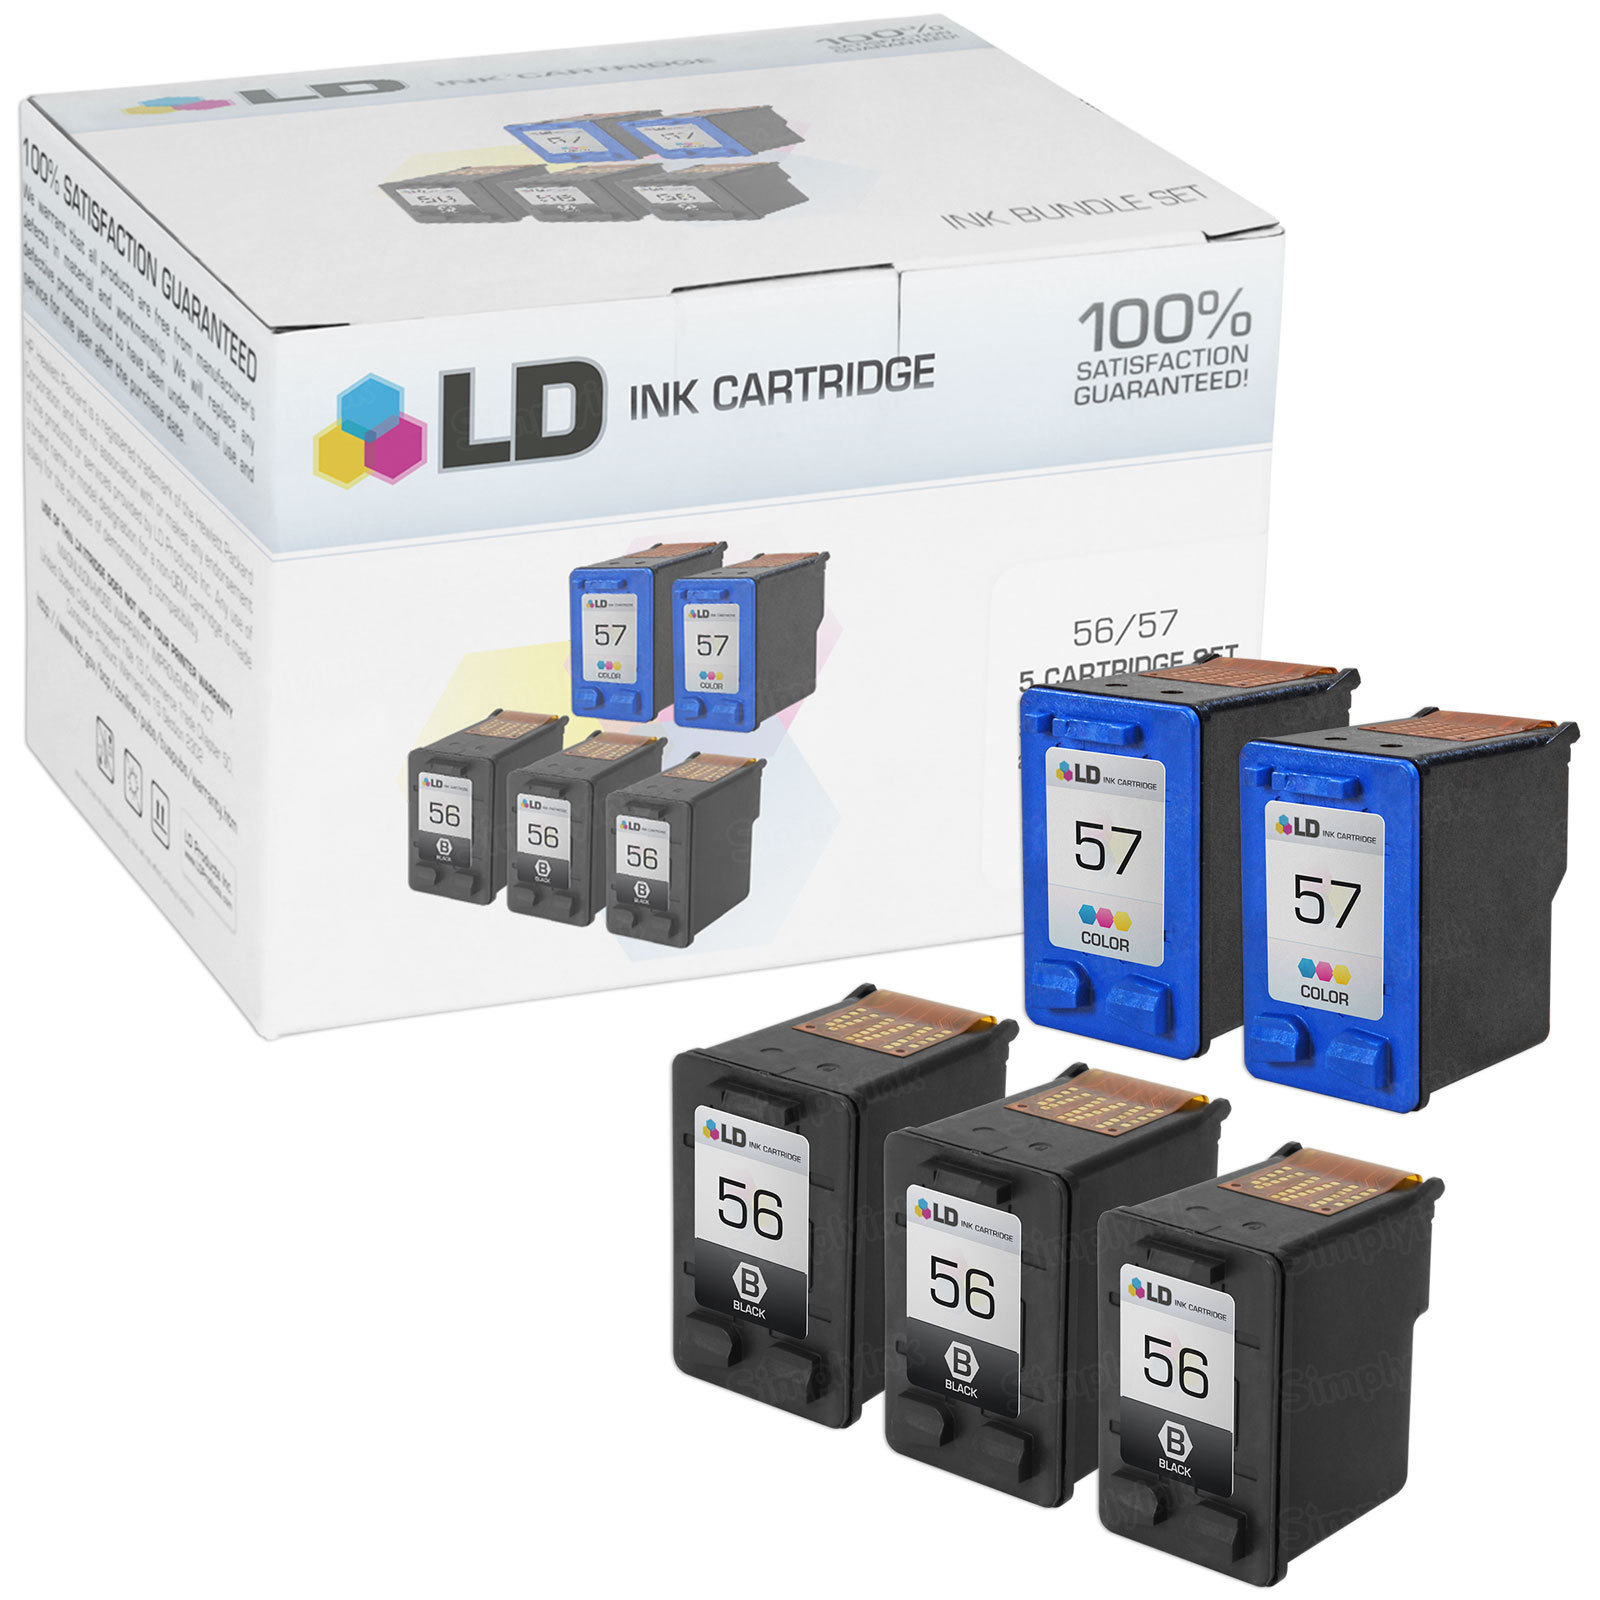 Remanufactured Bulk Set of 5 Ink Cartridges to Replace HP 56 & HP 57 (3 BK, 2 CLR)